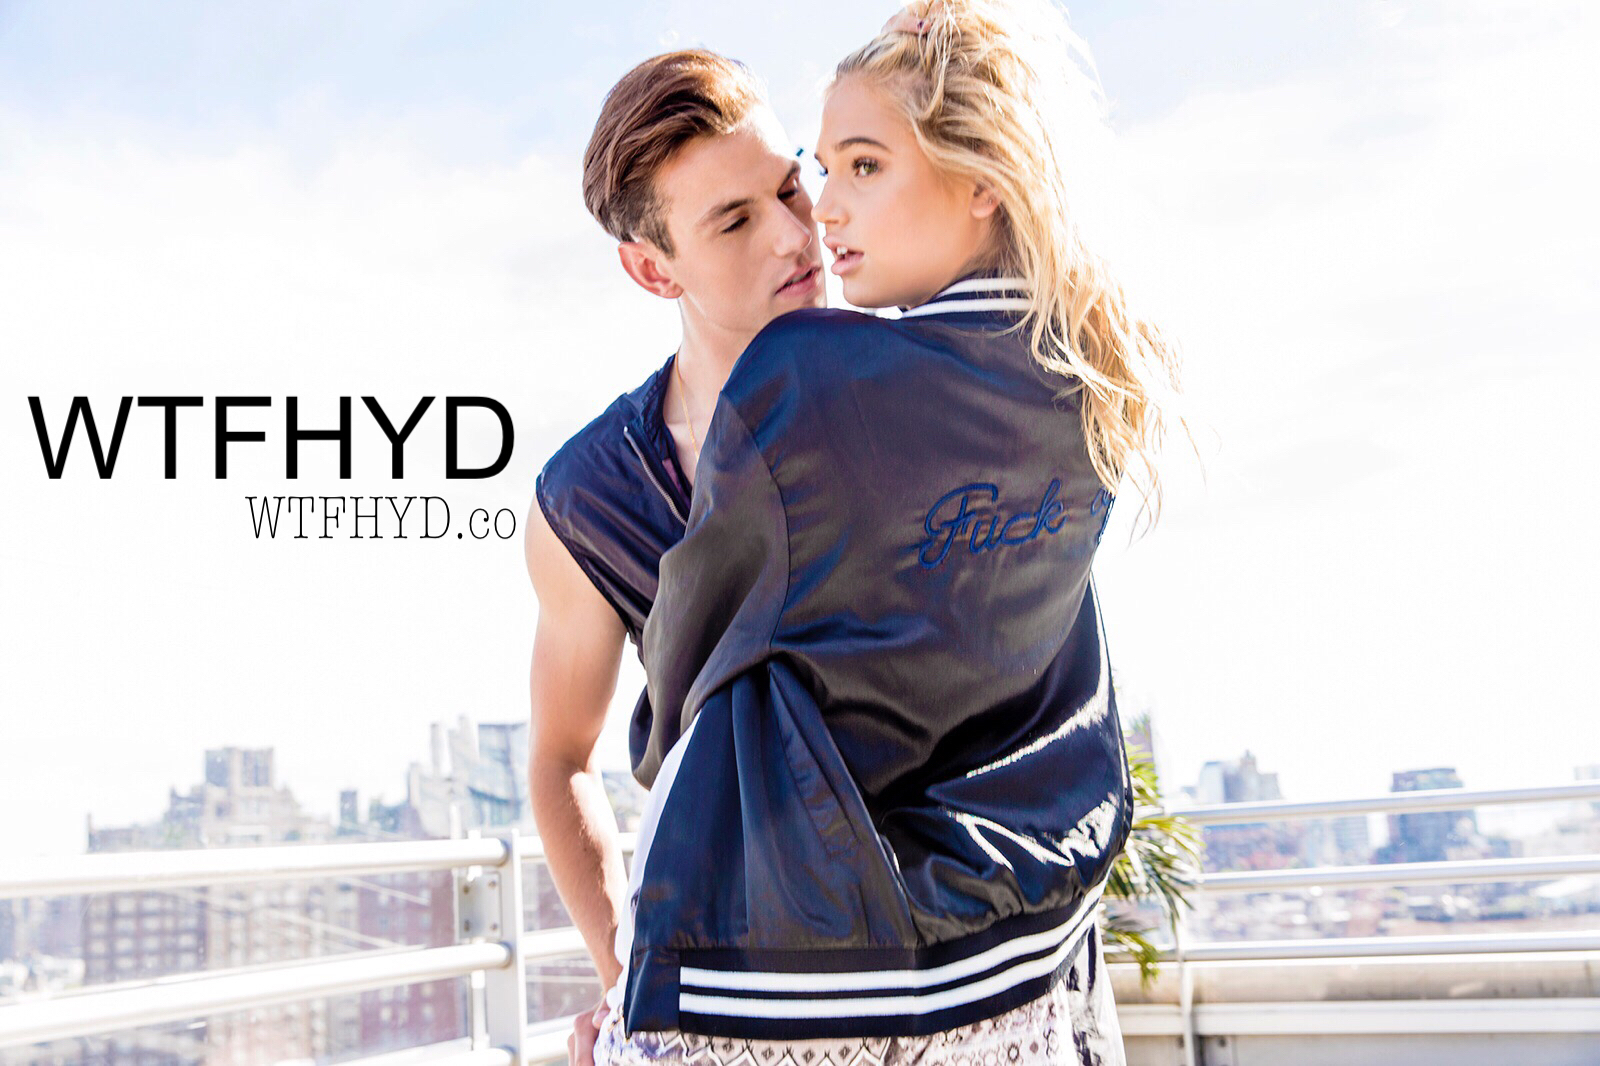 WTFHYD Shoots Debut Campaign On Manhattan Rooftop With Meredith Mickelson and Jessica Simpsons Dad Joe